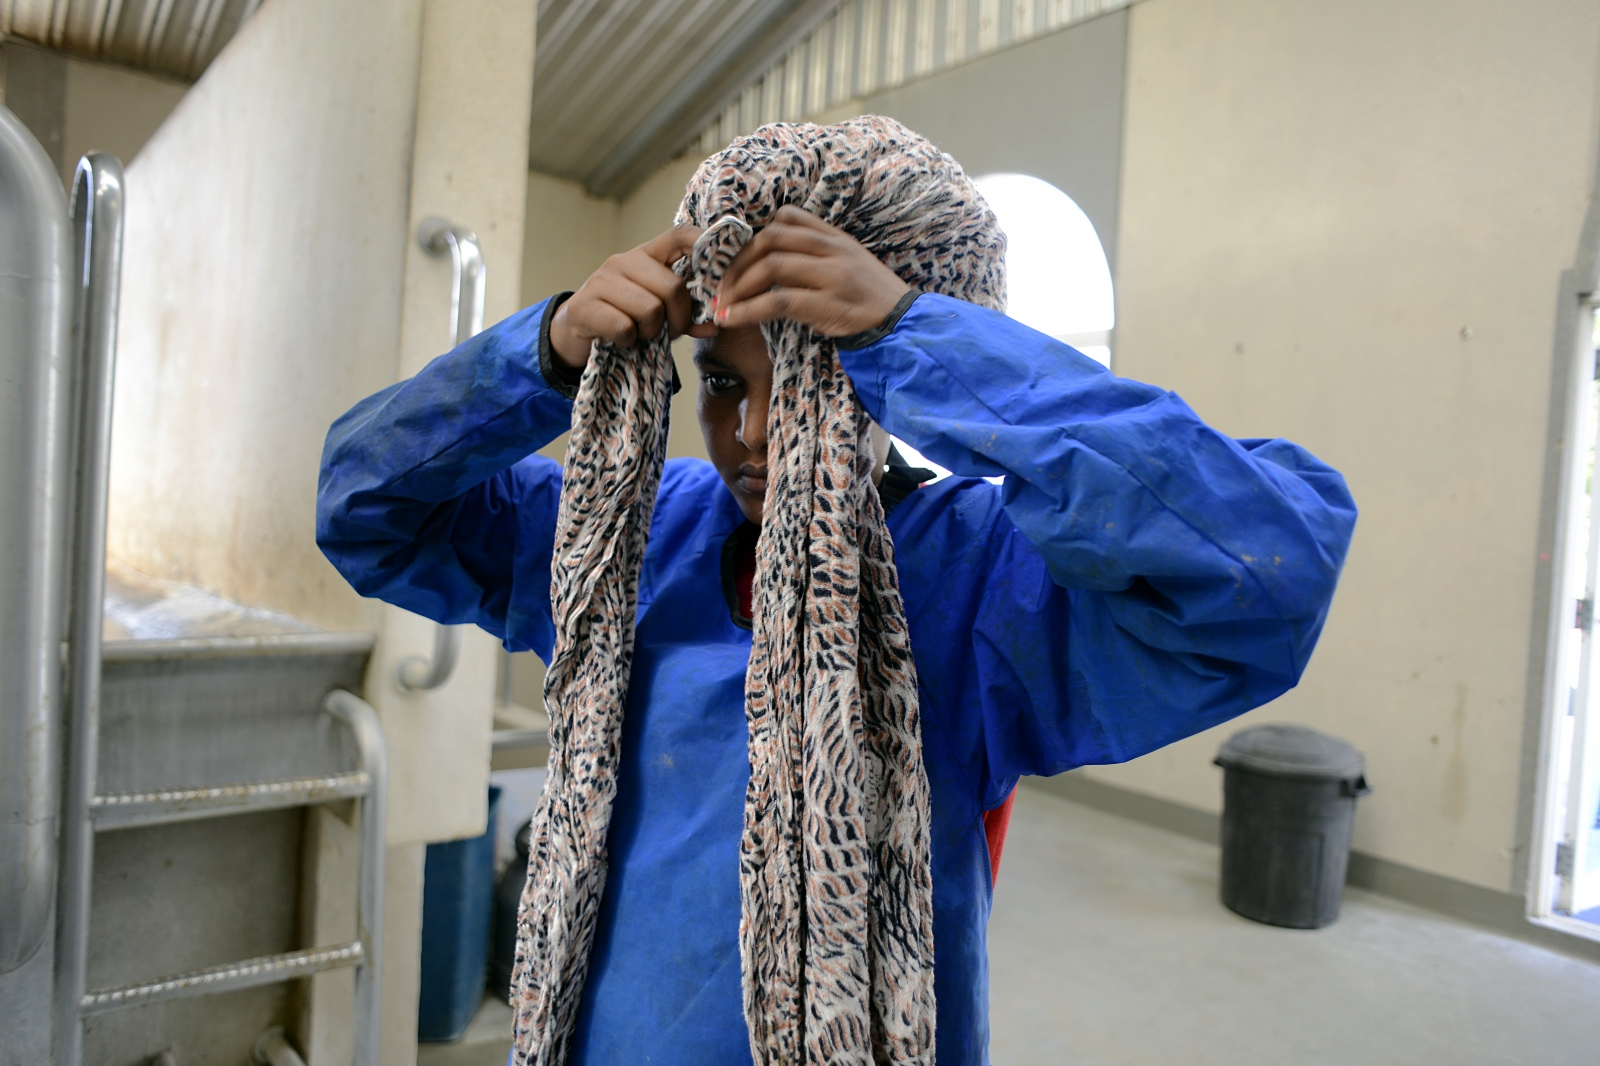 Semhar wraps a head scarf around her hair for protection while milking cows.